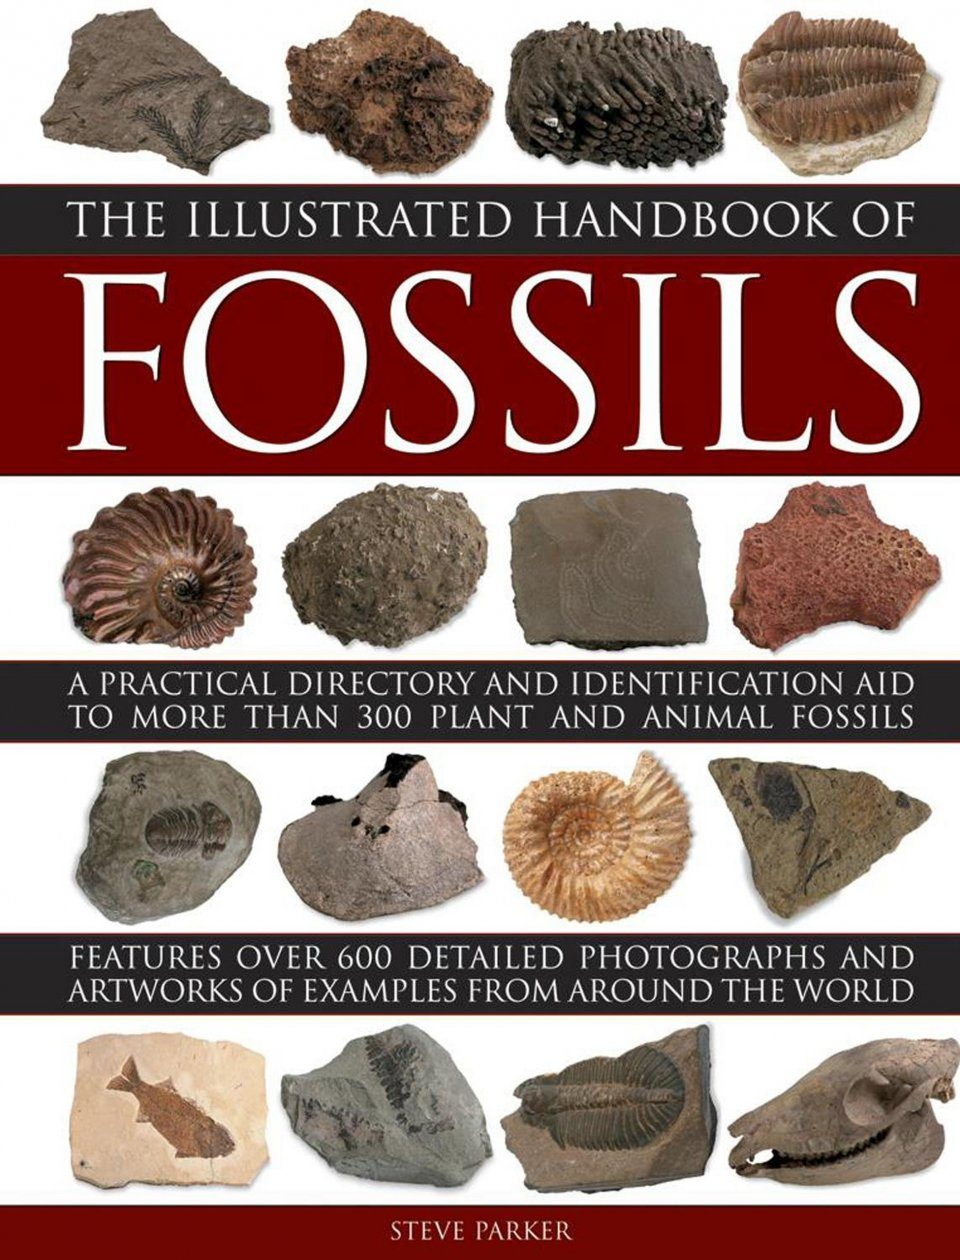 The Illustrated Handbook of Fossils